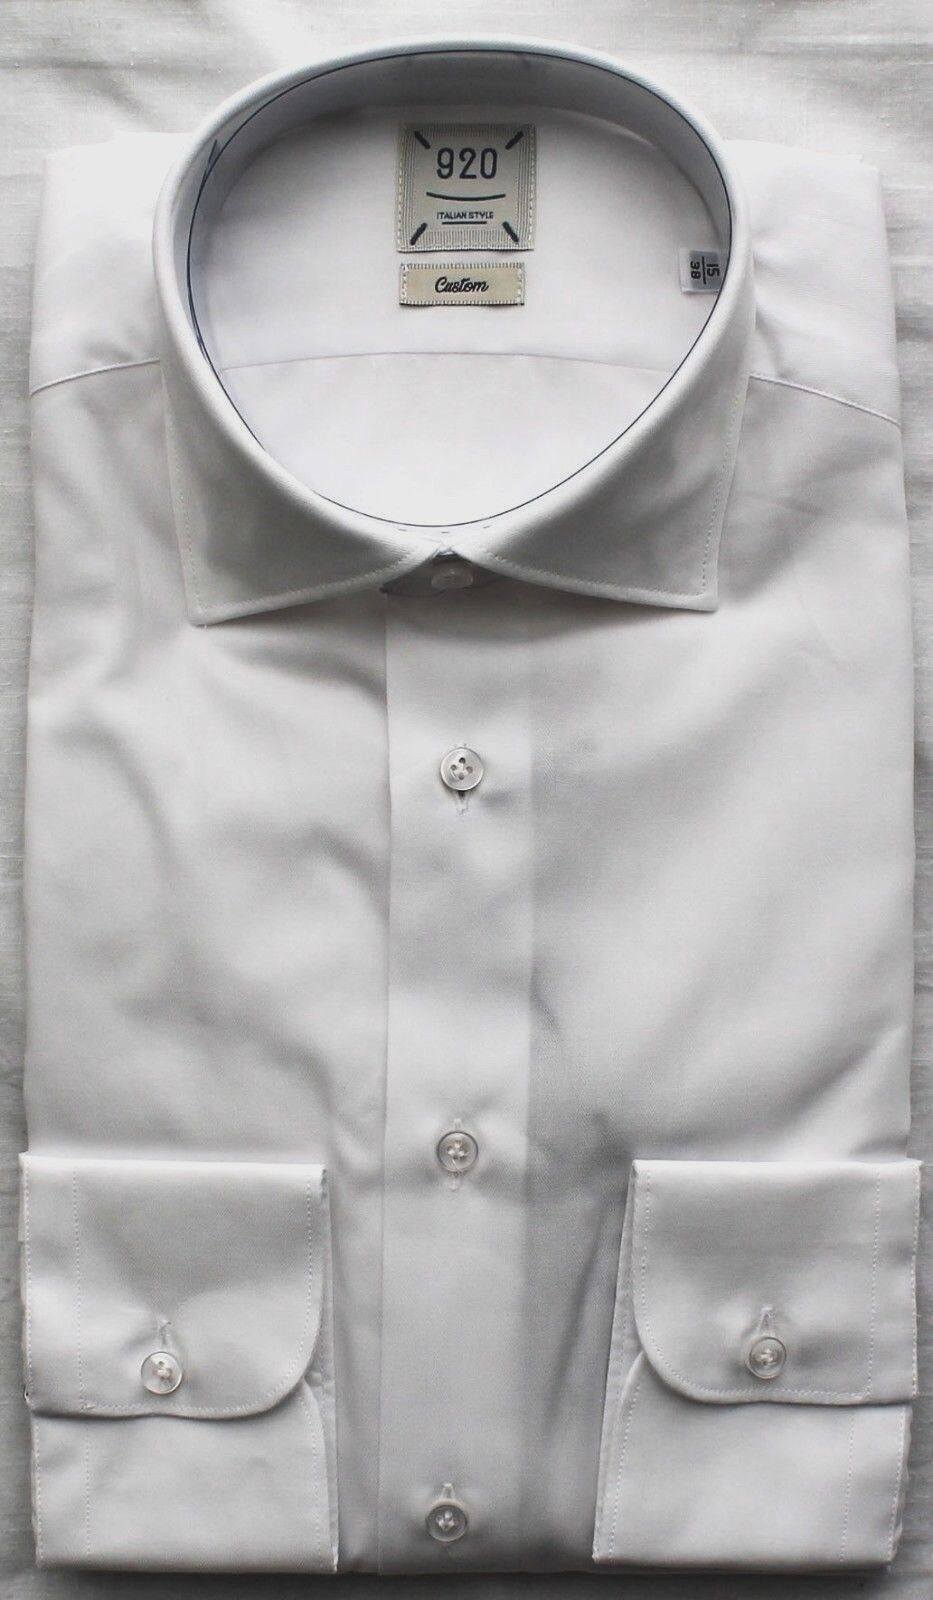 CAMICIA UOMO 920 BIANCA CUSTOM FIT COTONE 100% MADE IN ITALY